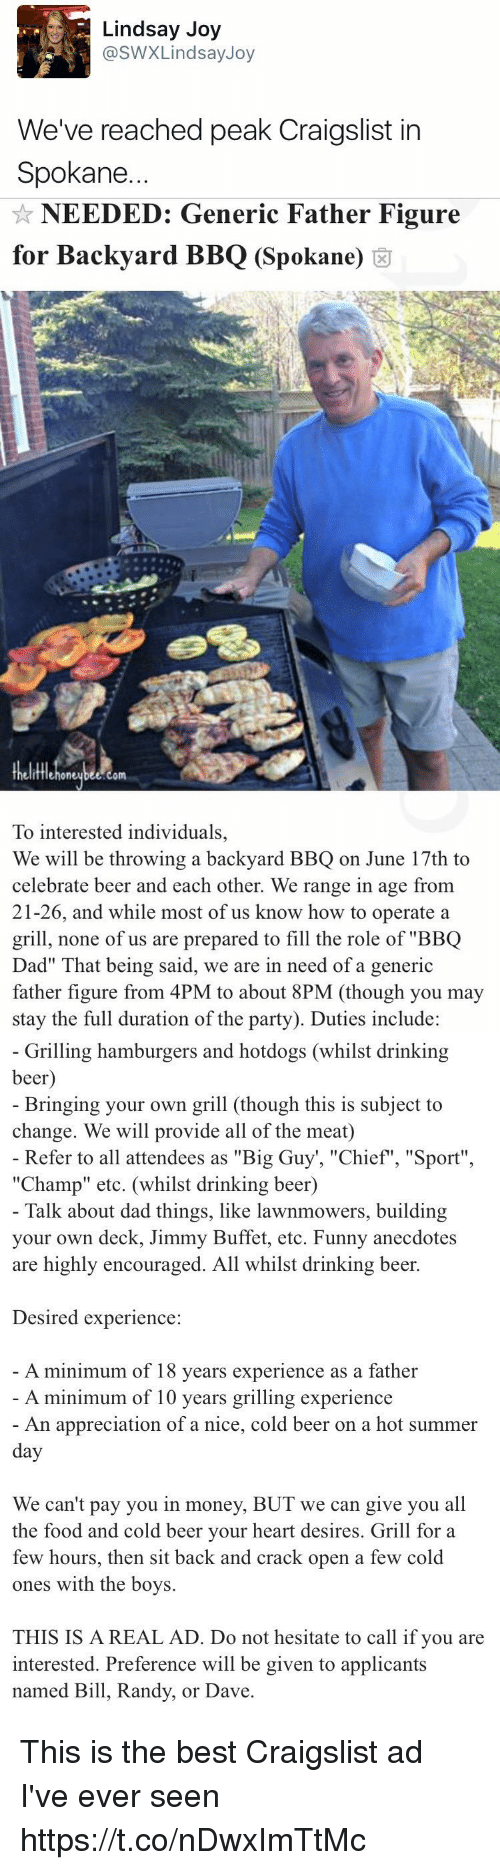 """Beer, Craigslist, and Dad: Lindsay Joy  @SWX Lindsay Joy  We've reached peak Craigslist in  Spokane.   NEEDED: Generic Father Figure  for Backyard BBQ (Spokane)  om  To interested individuals,  We will be throwing a backyard BBQ on June 17th to  celebrate beer and each other. We range in age from  21-26, and while most of us know how to operate a  grill, none of us are prepared to fill the role of """"BBQ  Dad"""" hat being said, we are in need of a generic  father figure from 4PM to about  8PM (though you may  stay the full duration of the party). Duties include:   Grilling hamburgers and hotdogs (whilst drinking  beer  Bringing your own grill (though this is subject to  change. We will provide all of the meat)  Refer to all attendees as """"Big Guy """"Chief"""", """"Sport""""  """"Champ"""" etc. (whilst drinking beer)  Talk about dad things, like lawnmowers, building  your own deck, Jimmy Buffet, etc. Funny anecdotes  are highly encouraged. All whilst drinking beer.  Desired experience  A minimum of 18 years experience as a father  A minimum of 10 years grilling experience  An appreciation of a nice, cold beer on a hot summer  day  We can't pay you in money, BUT we can give you all  the food and cold beer your heart desires. Grill for a  few hours, then sit back and crack open a few cold  ones with the boys.  THIS IS A REAL AD. Do not hesitate to call if you are  interested. Preference will be given to applicants  named Bill, Randy, or Dave This is the best Craigslist ad I've ever seen https://t.co/nDwxImTtMc"""